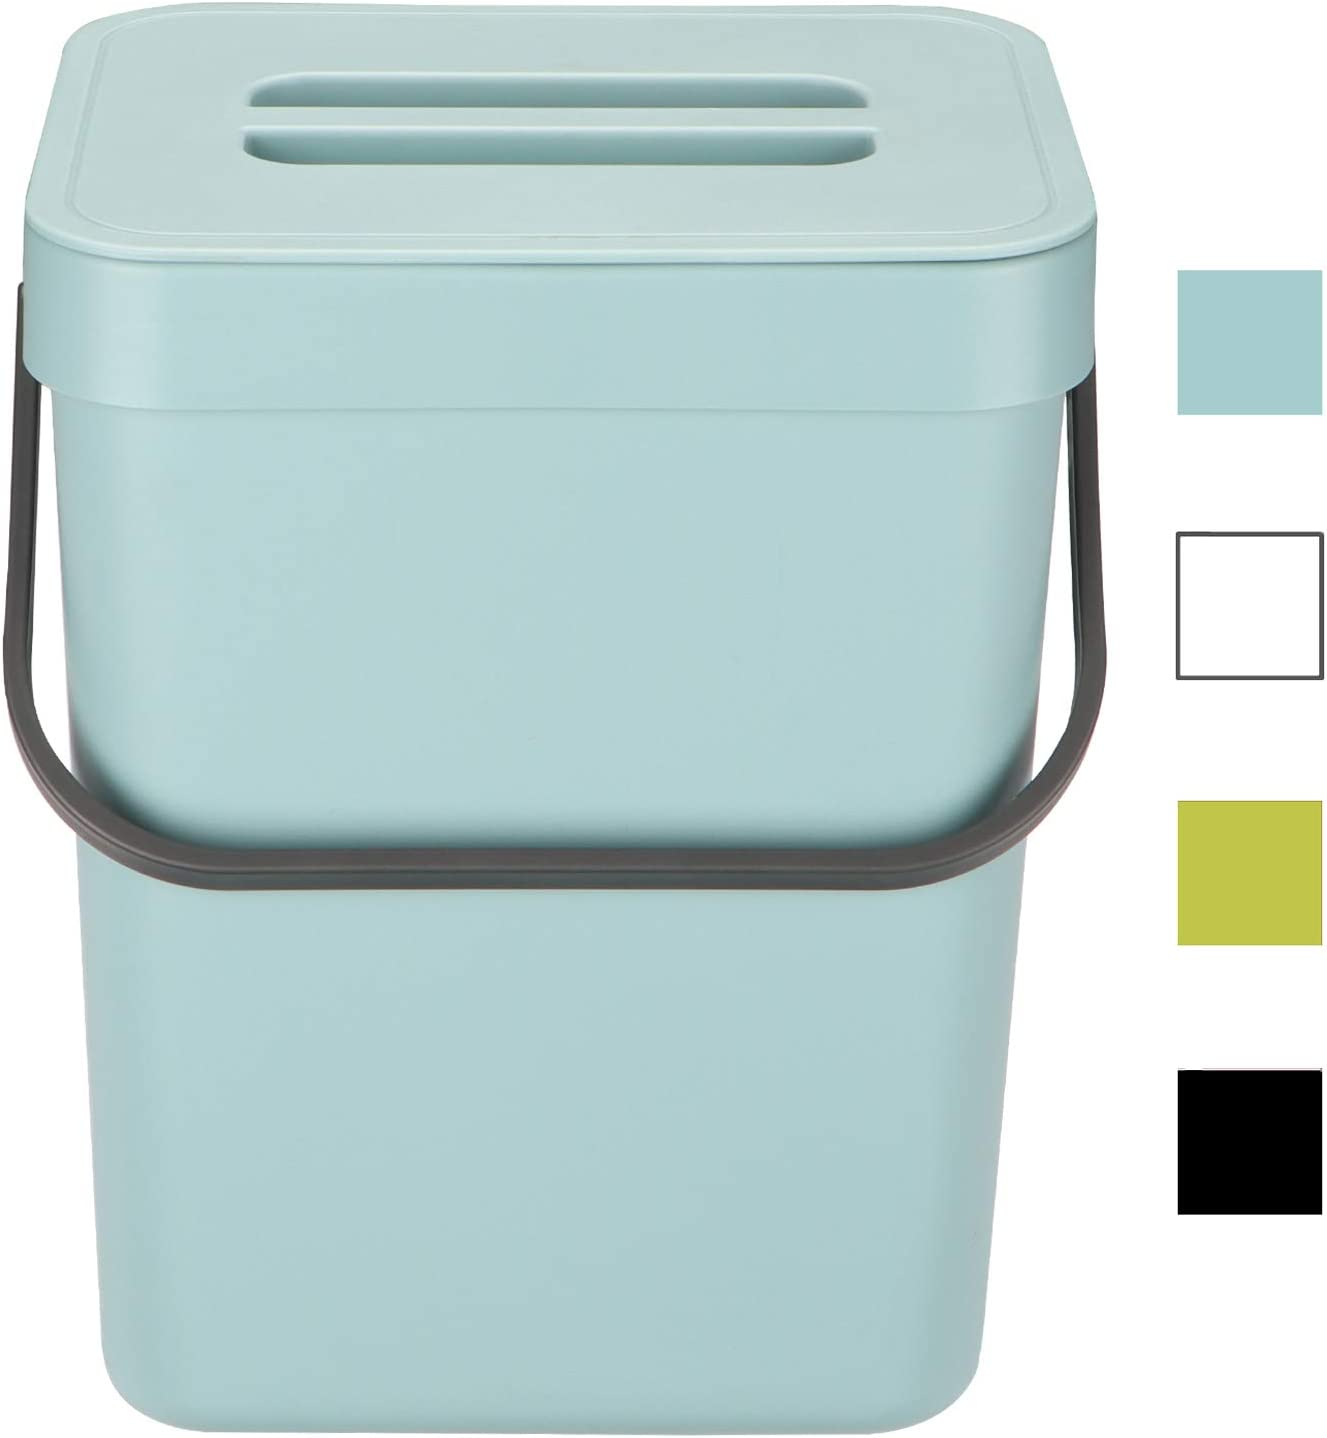 HOMWE Kitchen Compost Bin for Countertop or Under Sink Composting, 1.3 Gallon, Indoor Home Trash Can with Removable Airtight Lid, Storage Hook Hanger, Aqua Plastic